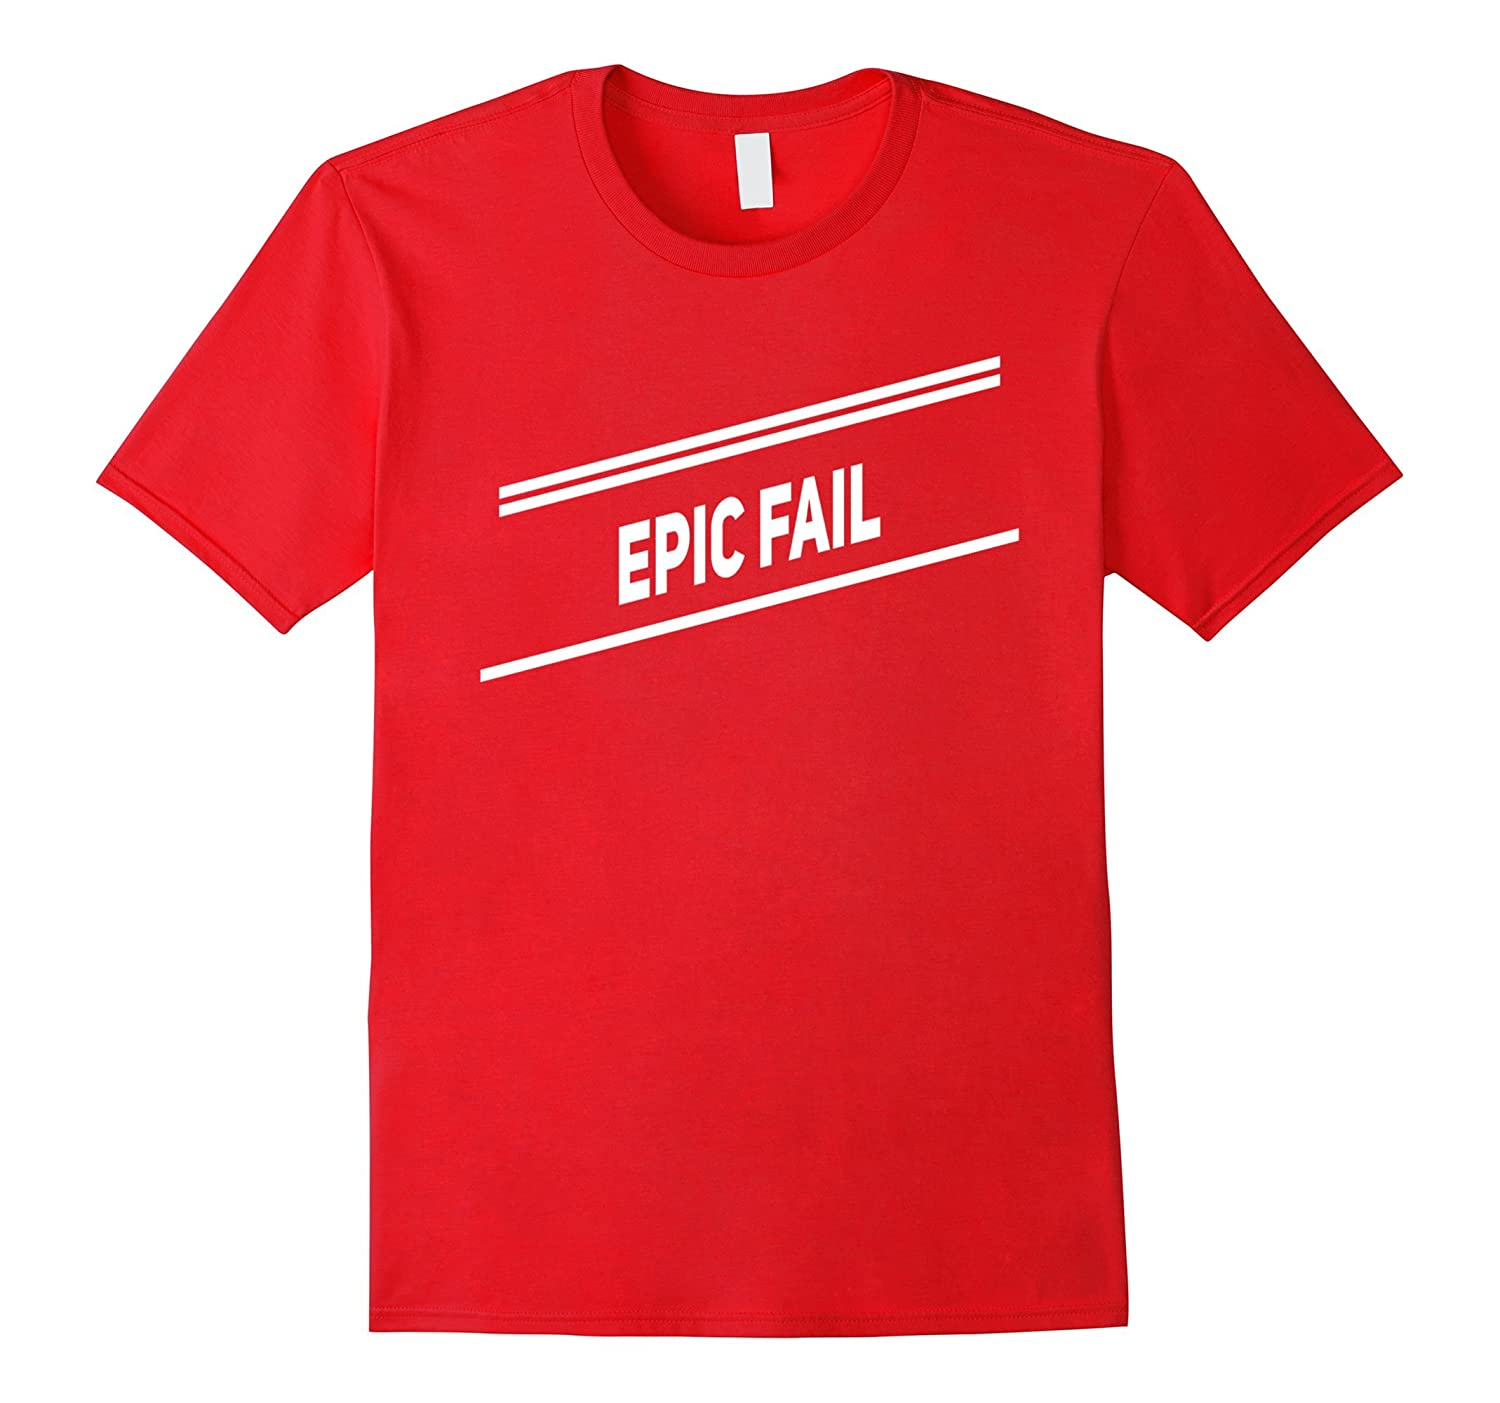 Epic Fail Stripe Cool T-shirt Men Women Kids Boys Girls-T-Shirt